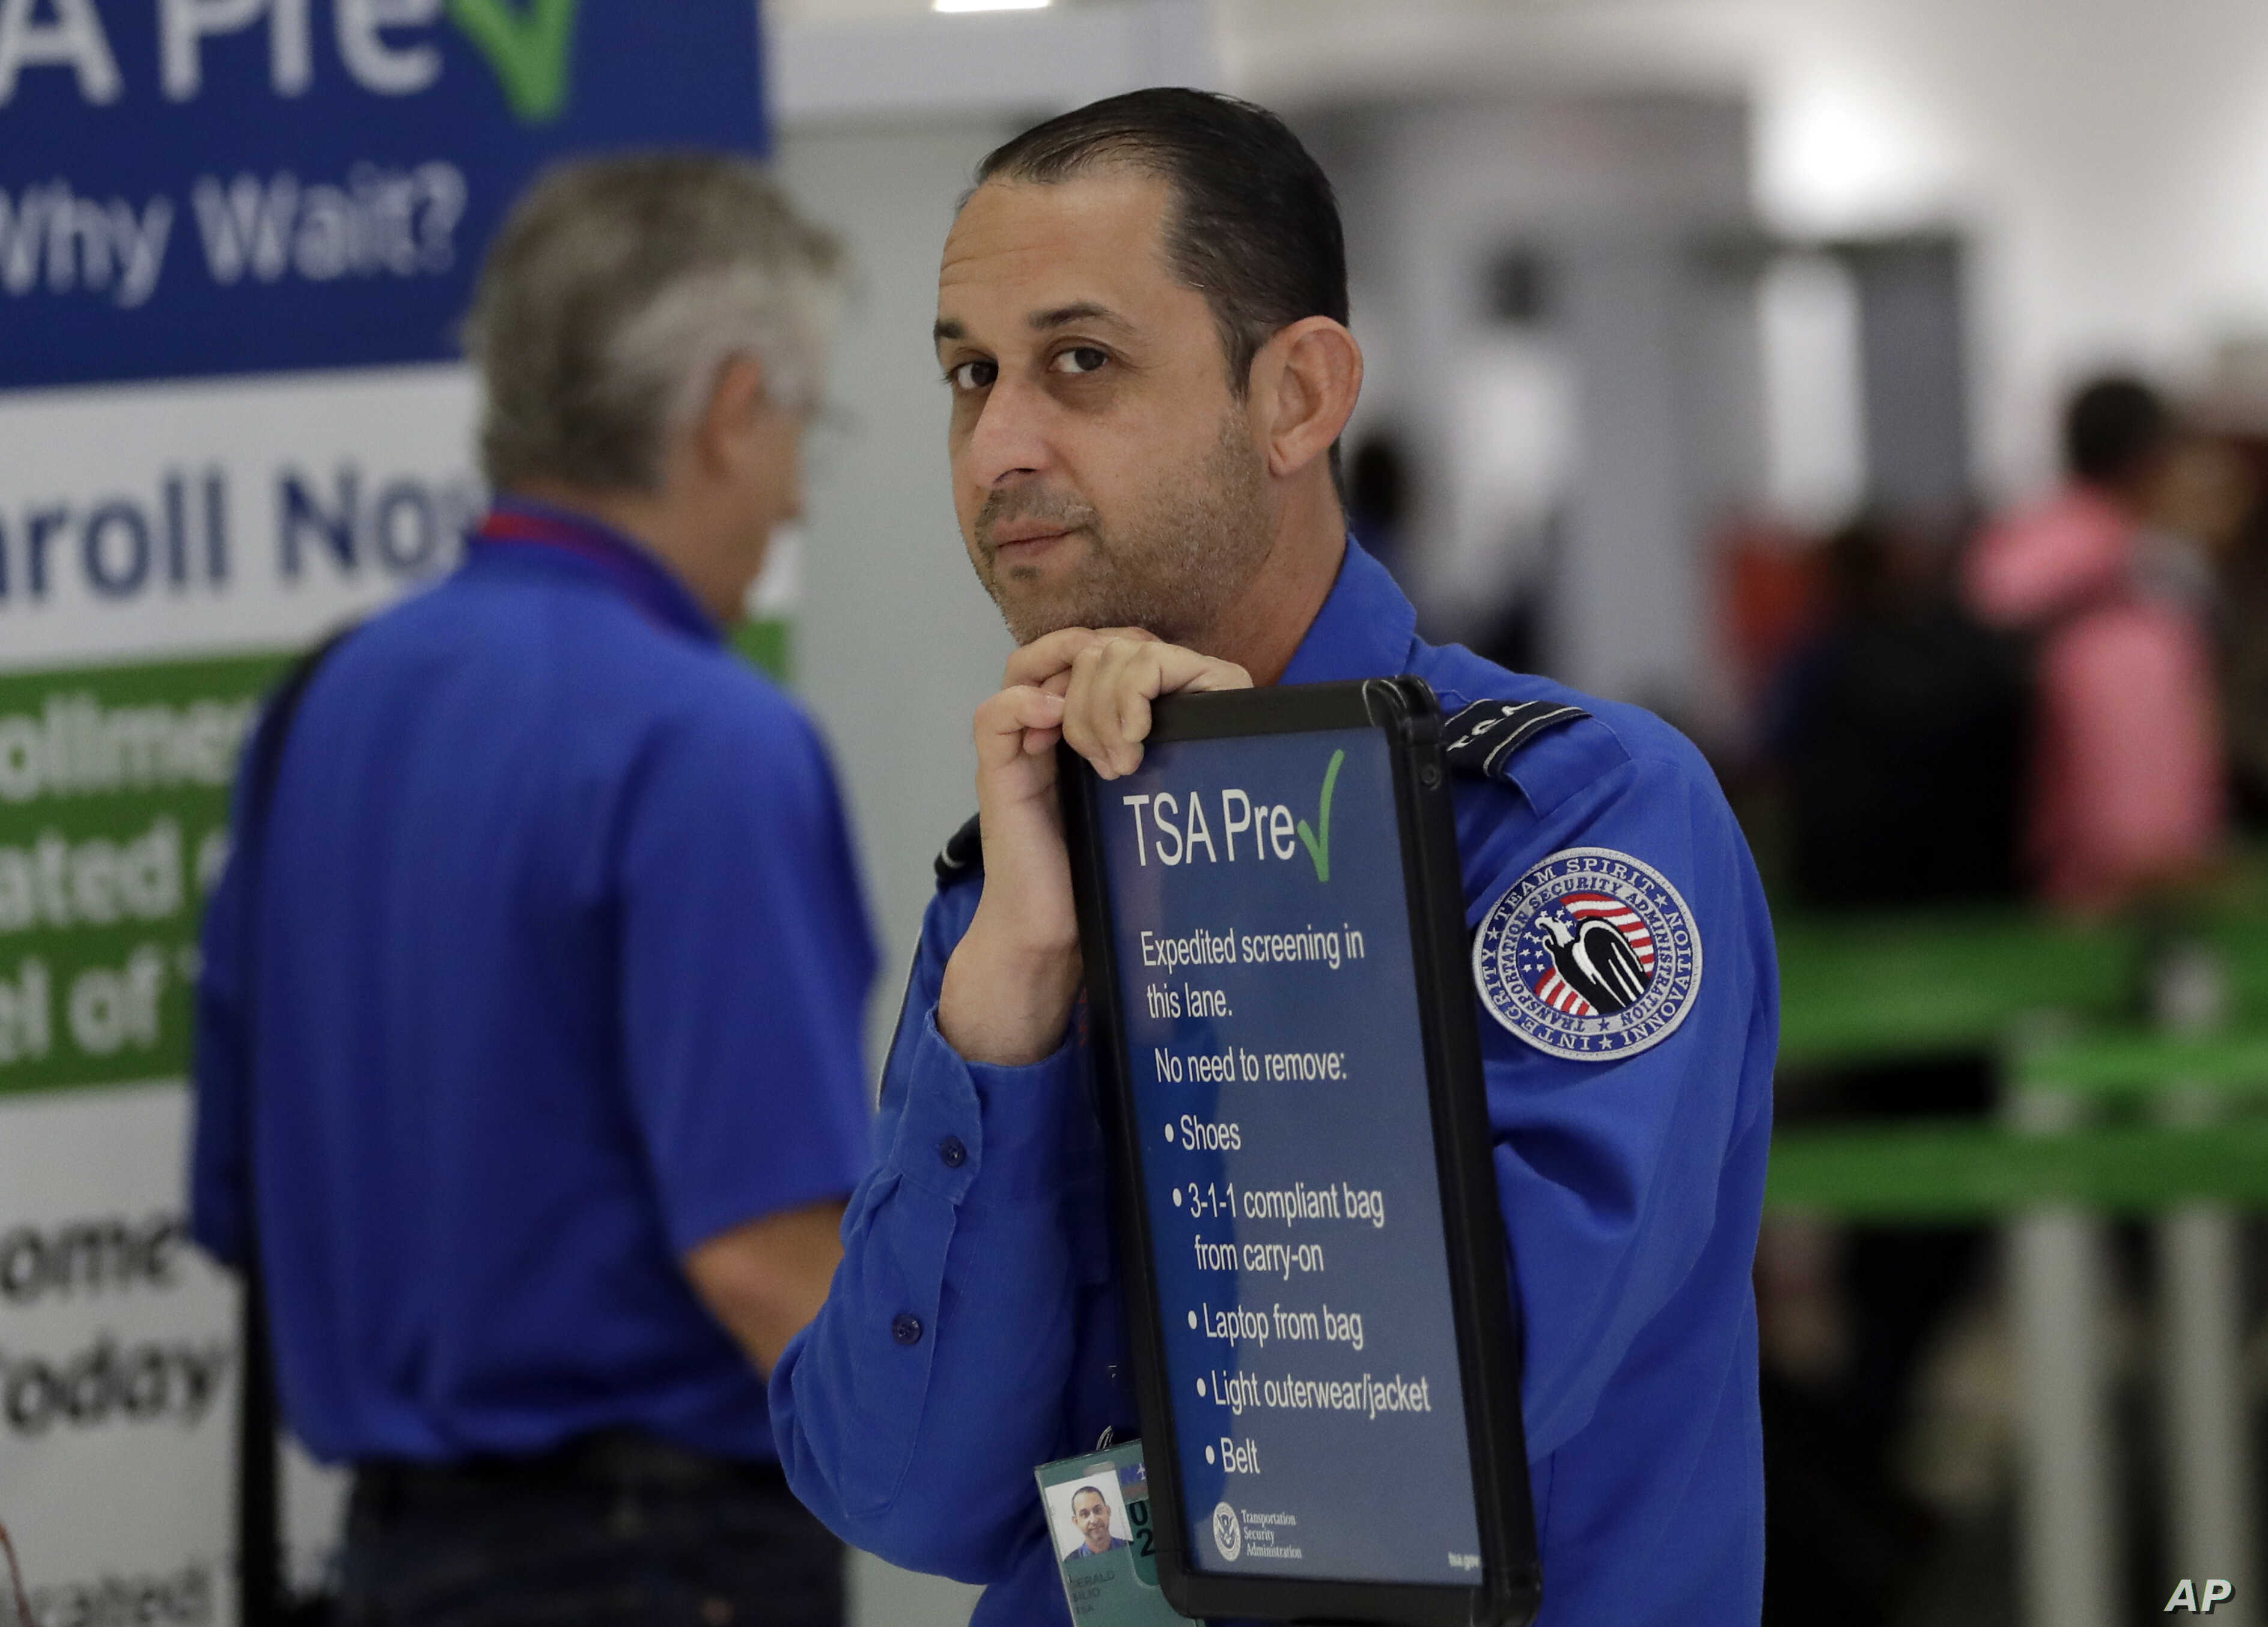 A Transportation Security Administration employee works at a security checkpoint at Miami International Airport, Jan. 18, 2019, in Miami.